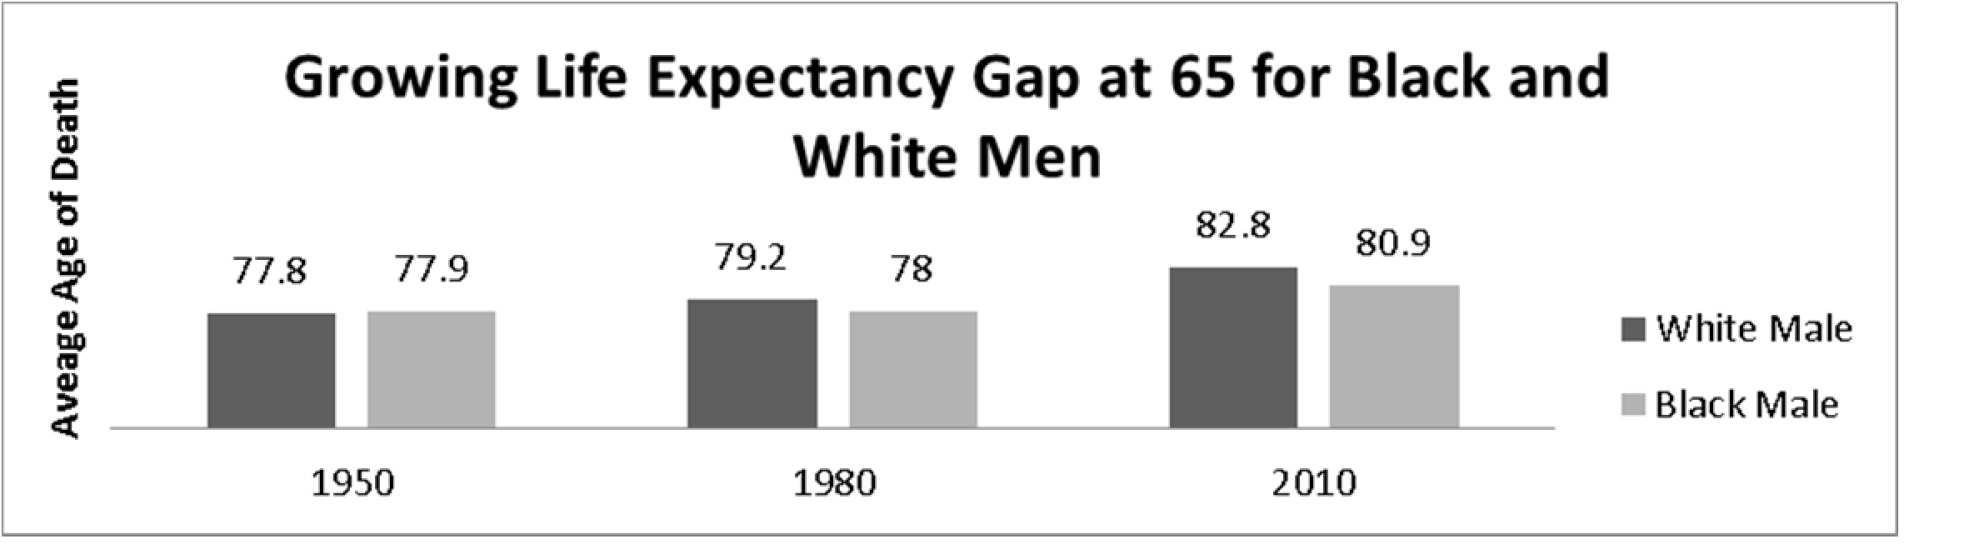 racial disparities PN graph 3